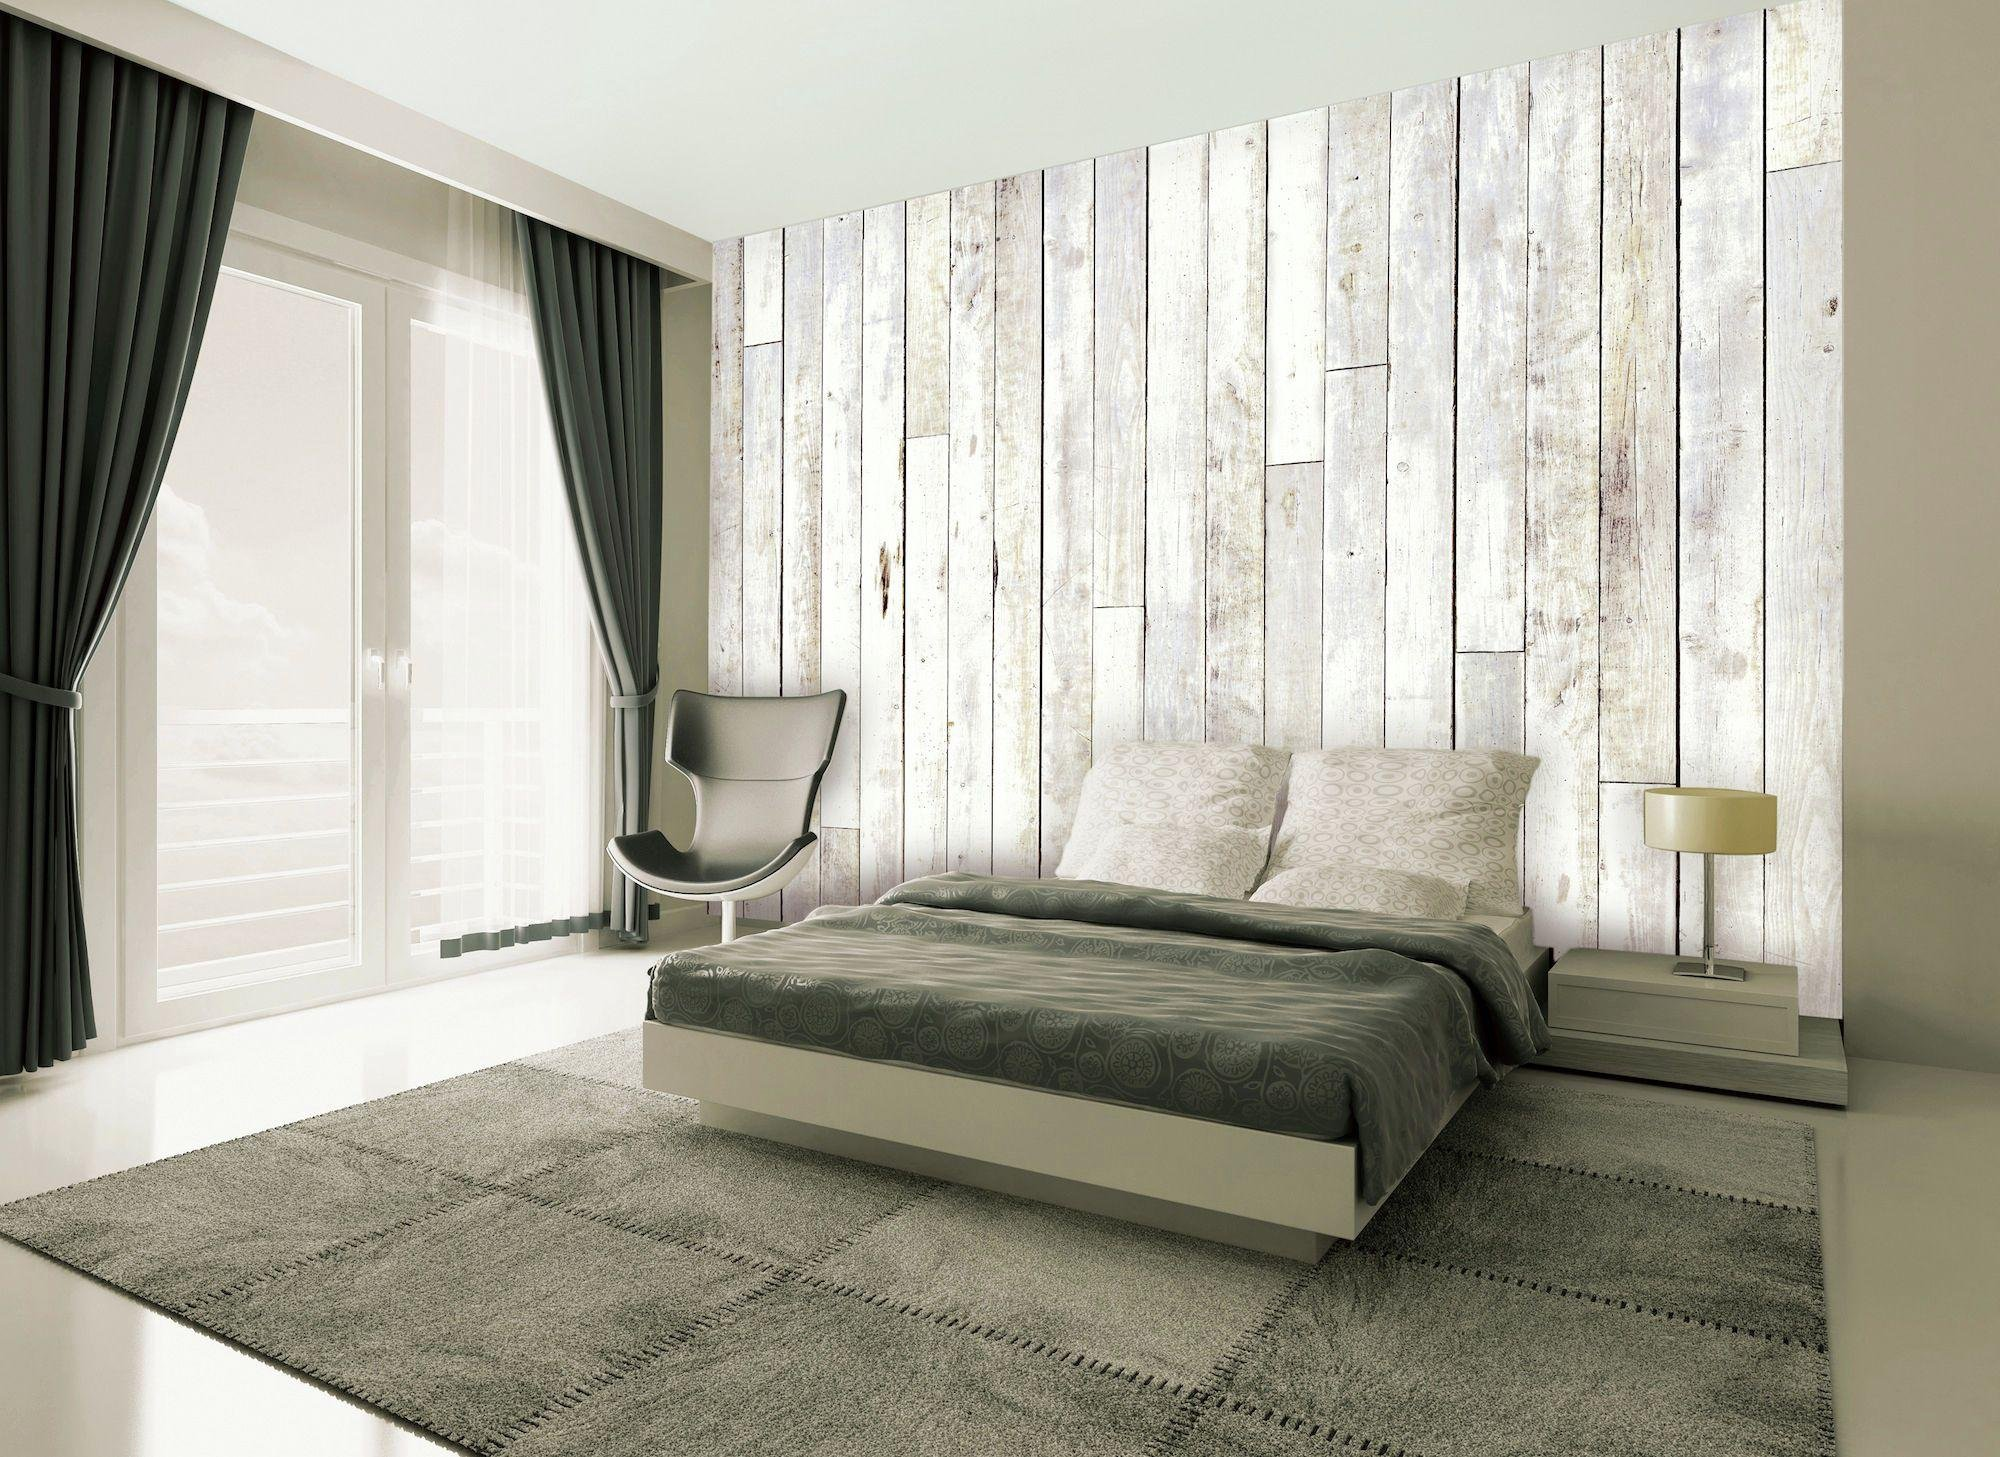 Image of 1Wall - Distressed Wood Panel - Wall Mural